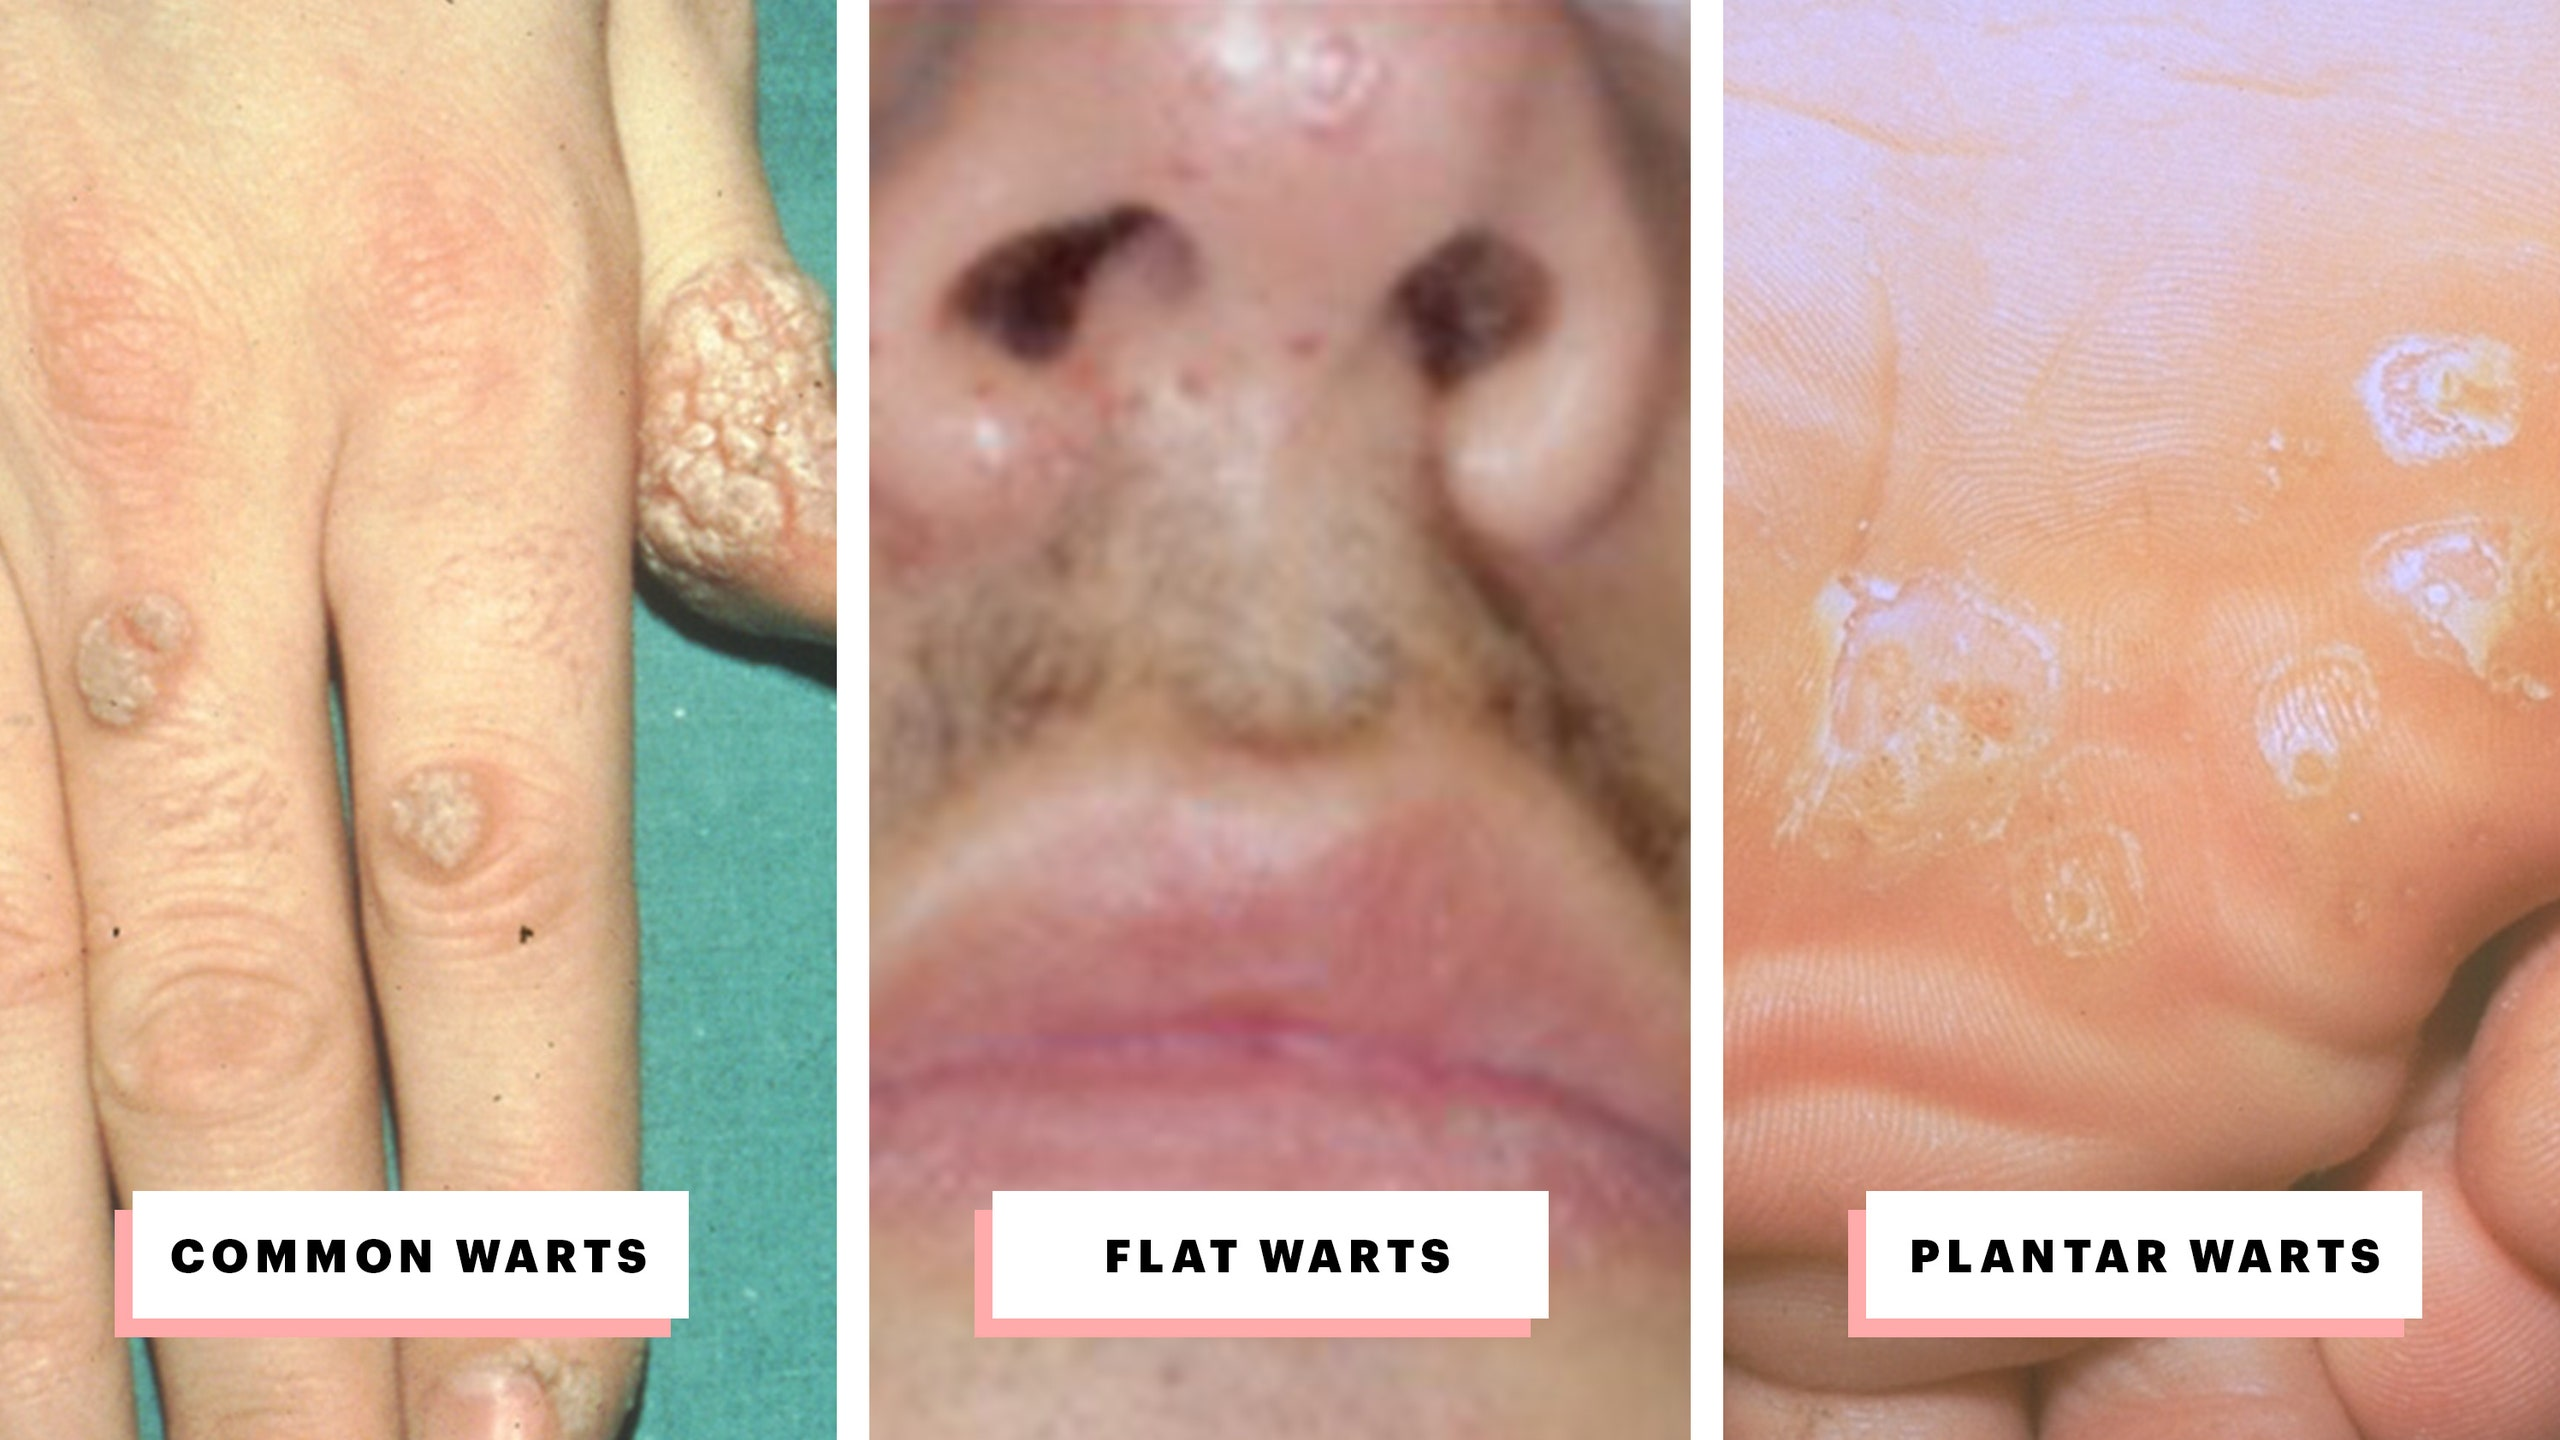 hpv skin warts contagious papillary urothelial carcinoma ureter